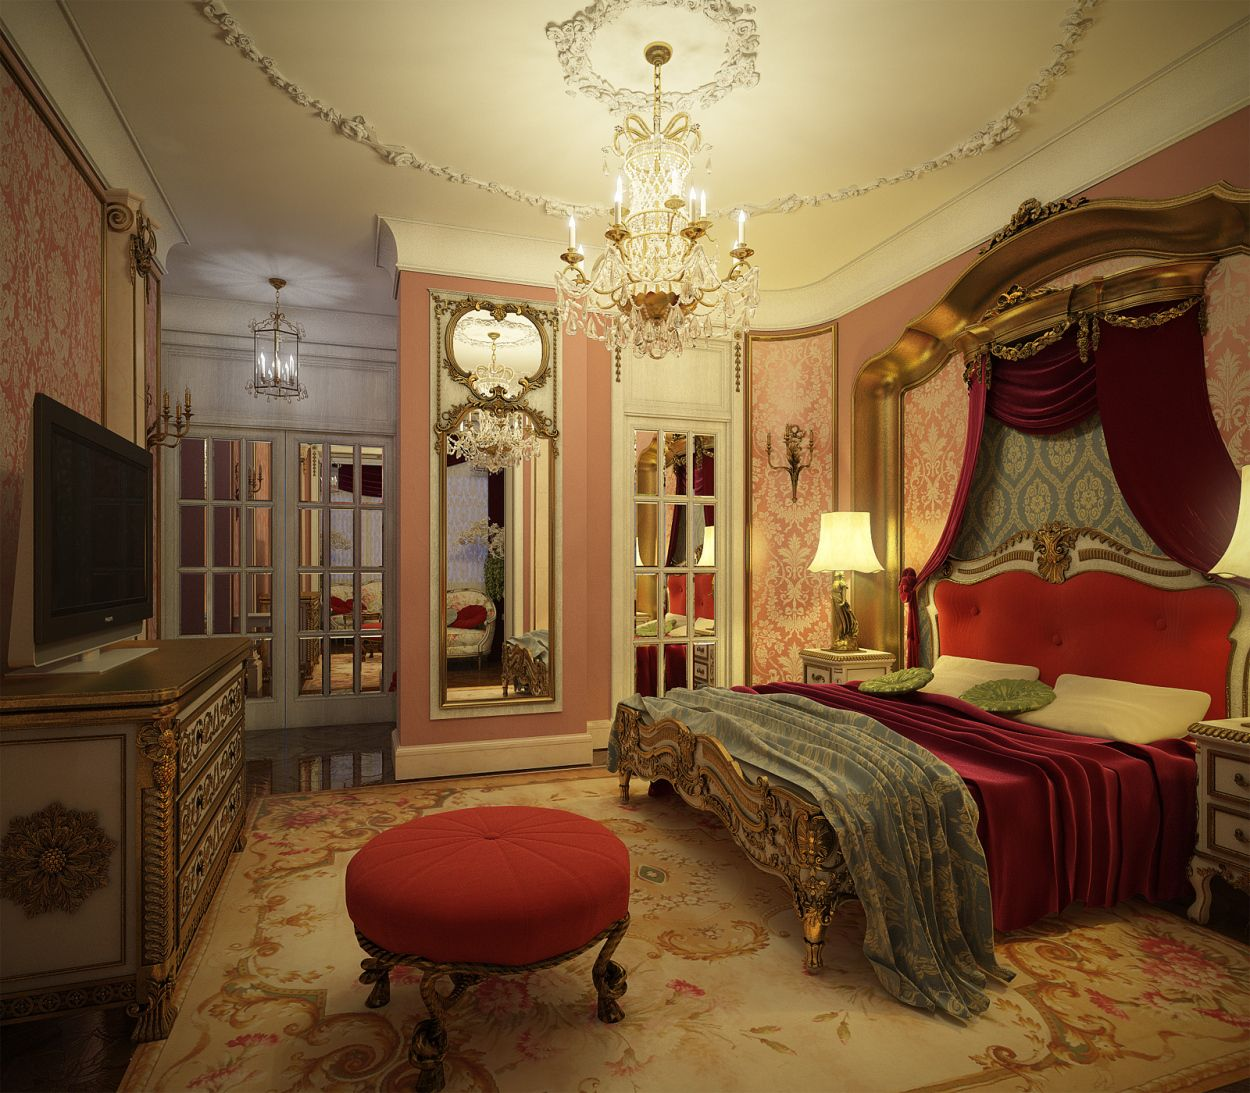 opulent bedroom furniture best quality check more at httpsearchfororangecountyhomes opulent furniture82 furniture